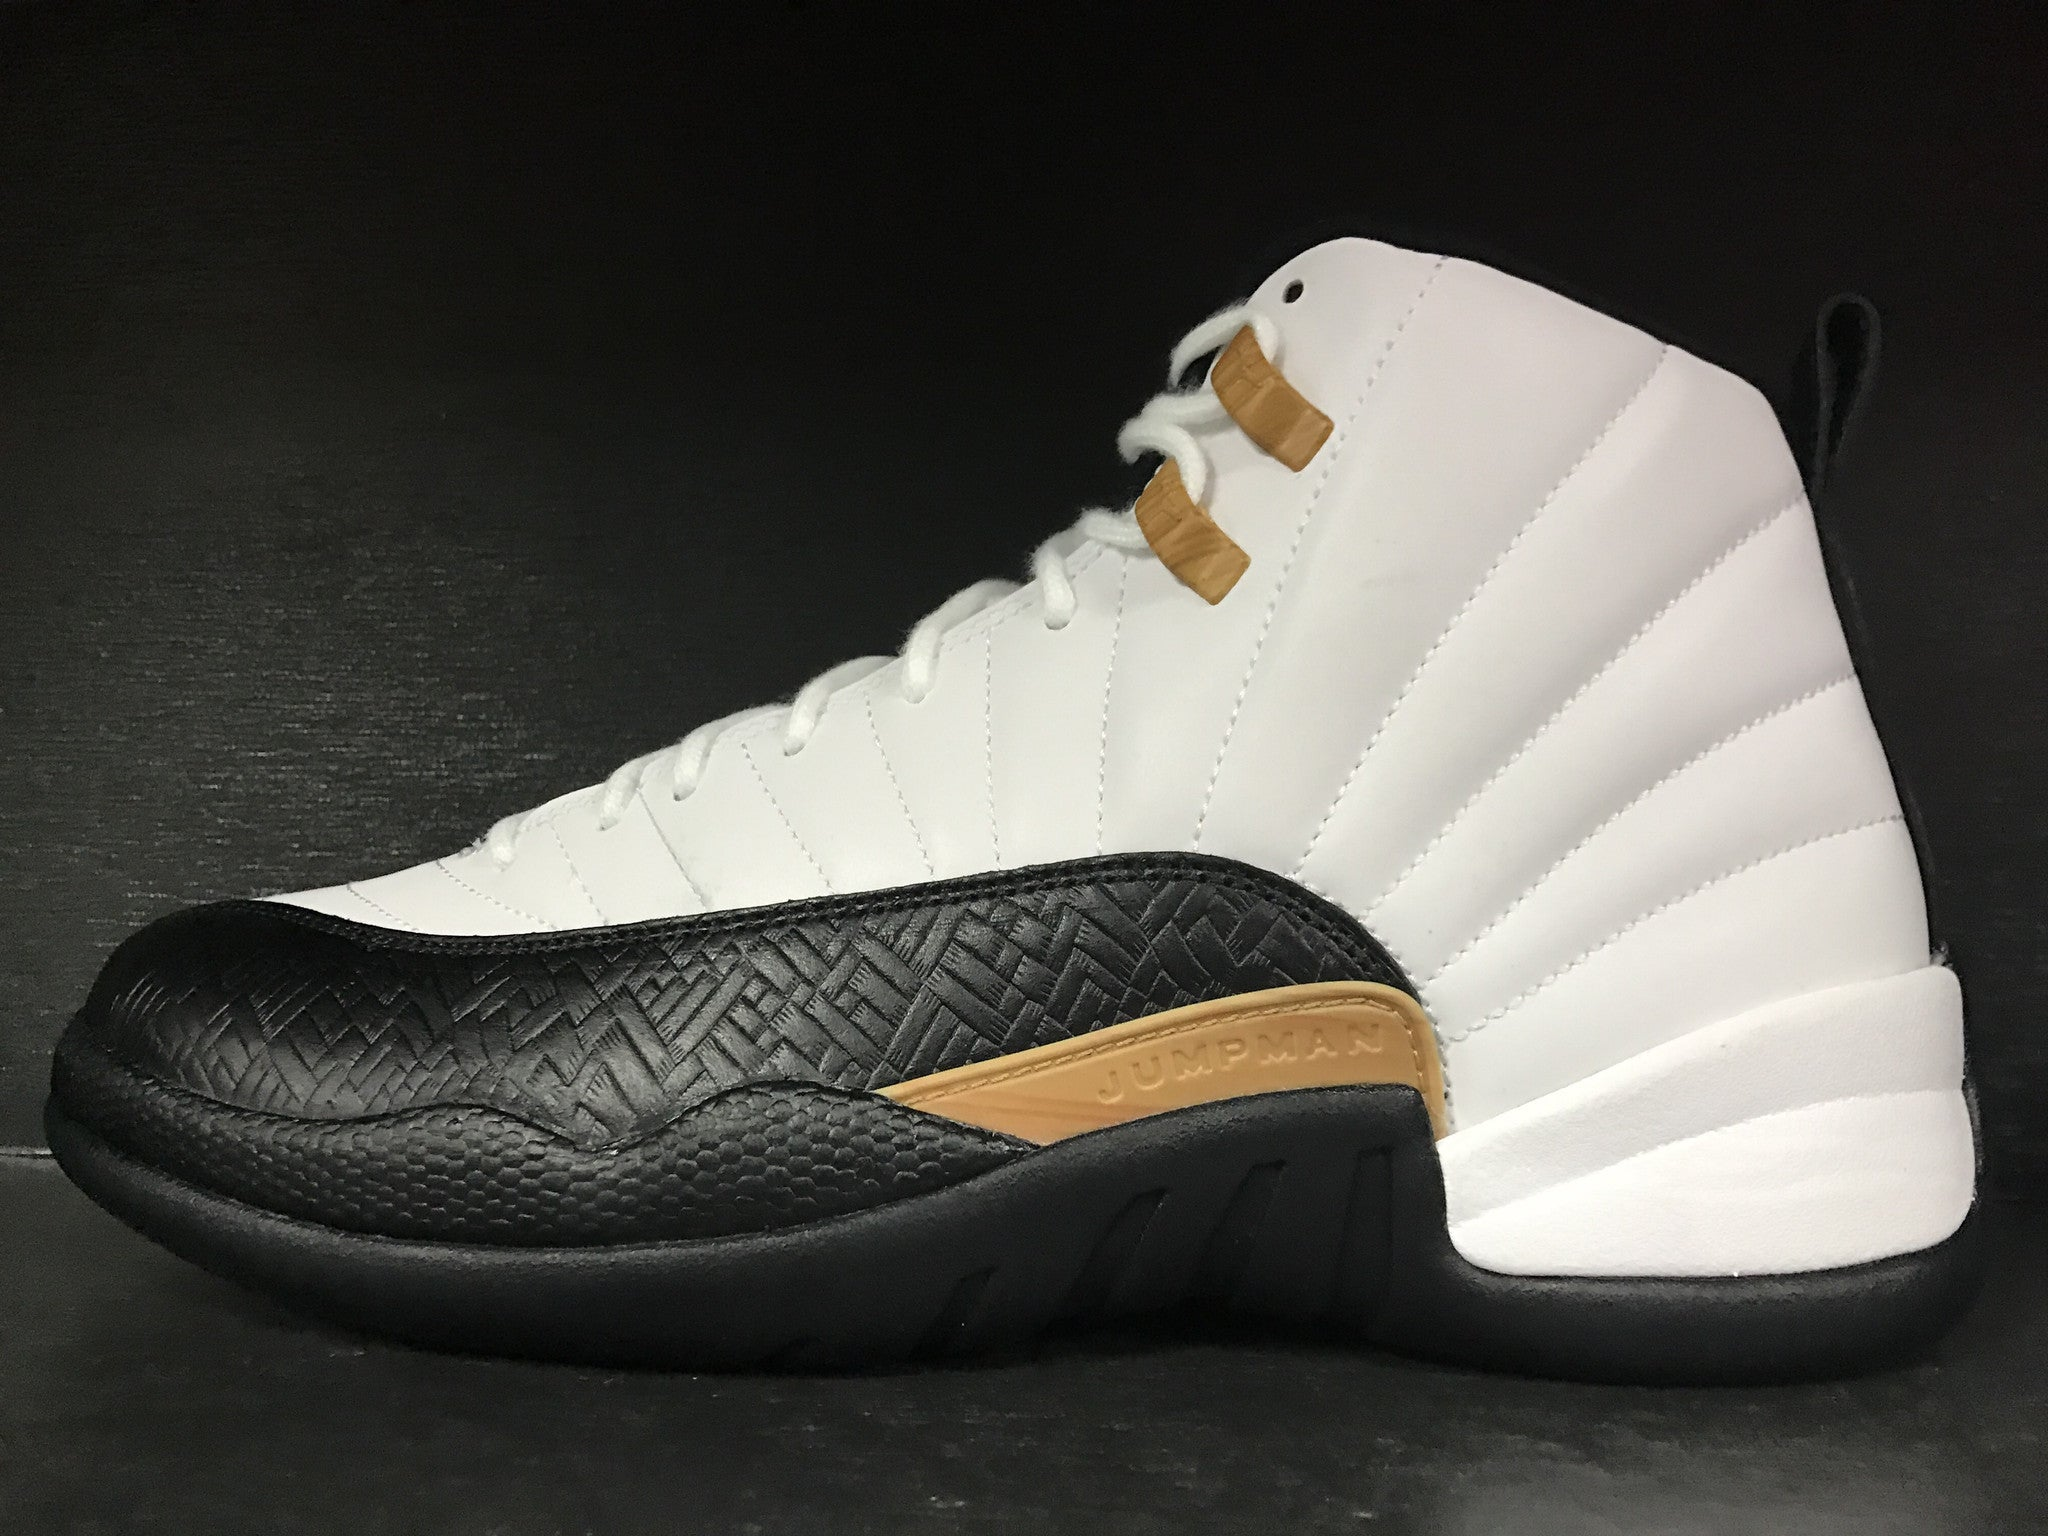 Air Jordan 12 Retro 'Chinese New Year'